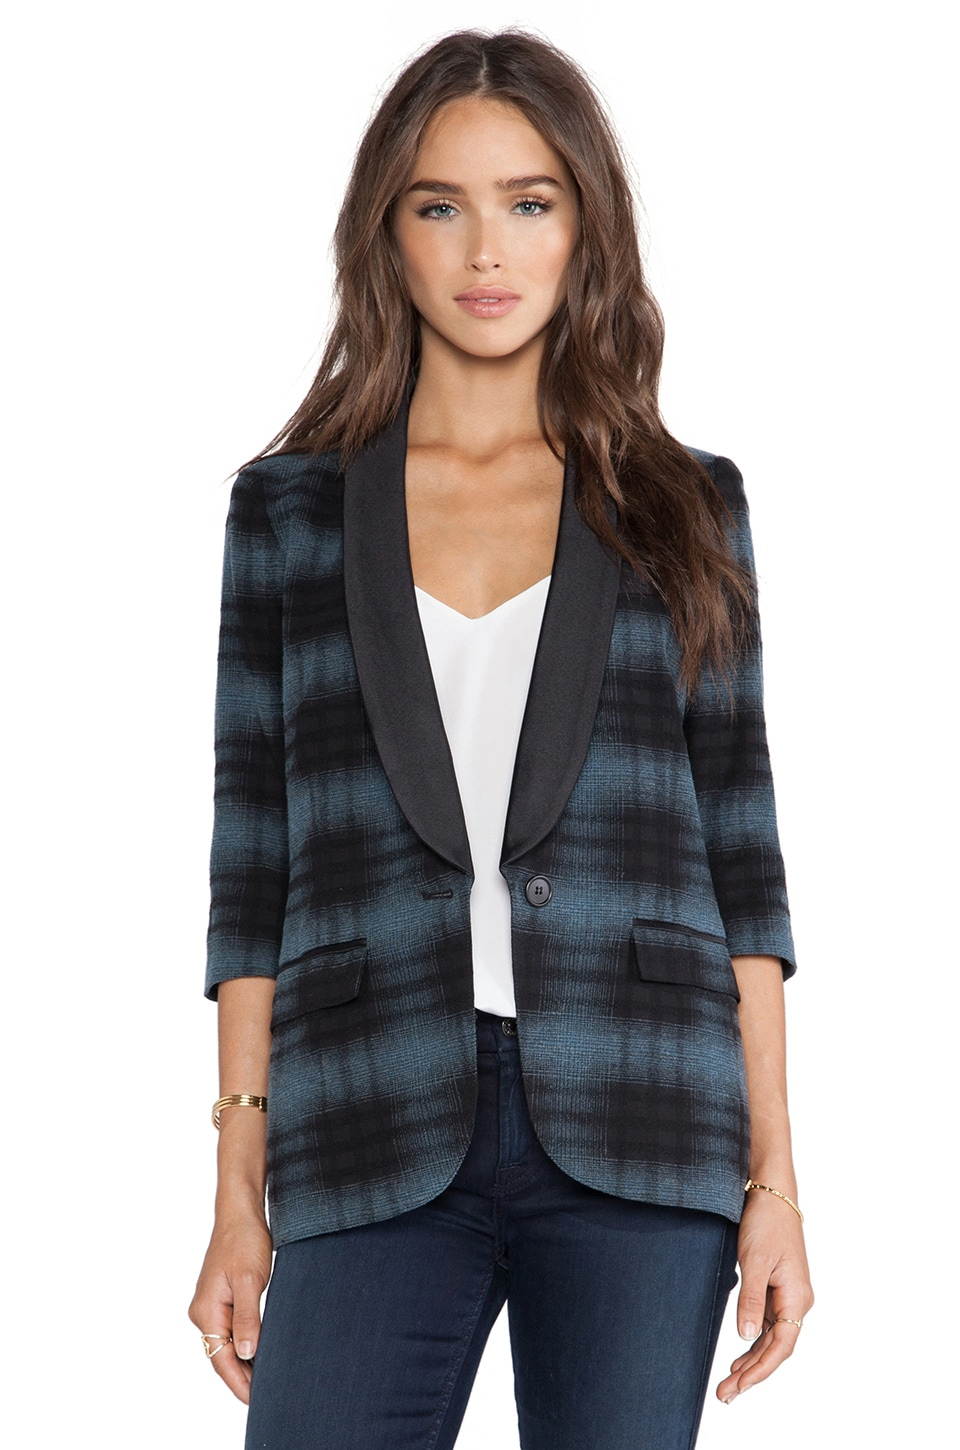 Smythe Smoking Jacket in Black & Blue Plaid